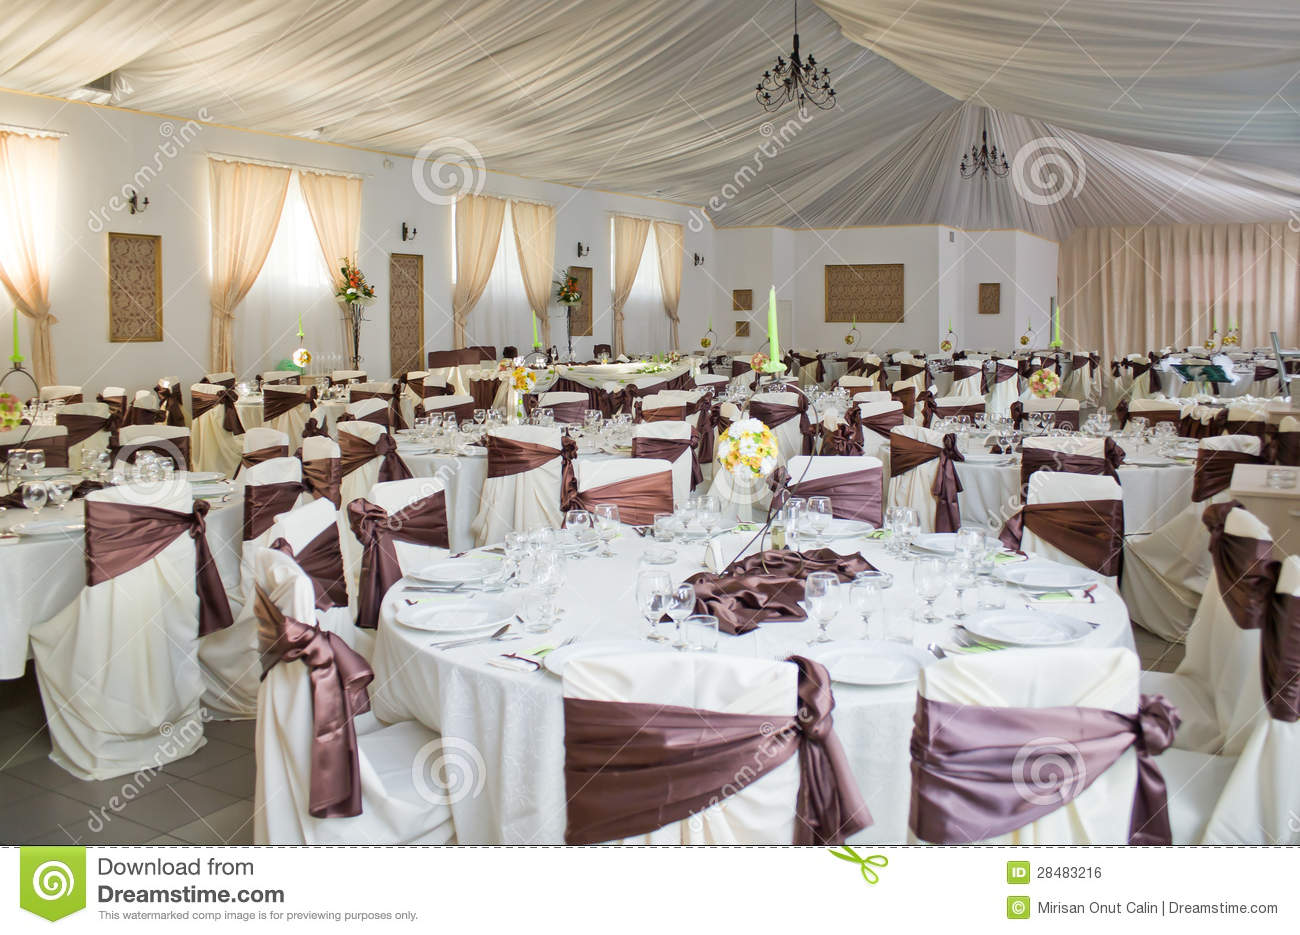 Indoor Wedding Venue Royalty Free Stock Photo: Luxurious Wedding Reception Stock Photo